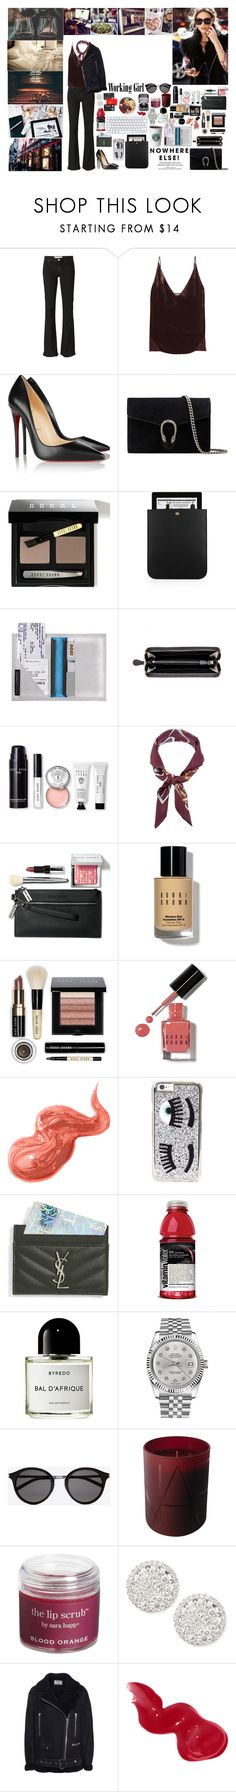 """Unbenannt #667"" by isa1 ❤ liked on Polyvore featuring IRO, J Brand, Christian Louboutin, Gucci, Bobbi Brown Cosmetics, Yves Saint Laurent, Bottega Veneta, Ralph Lauren Blue Label, Chiara Ferragni and Byredo"